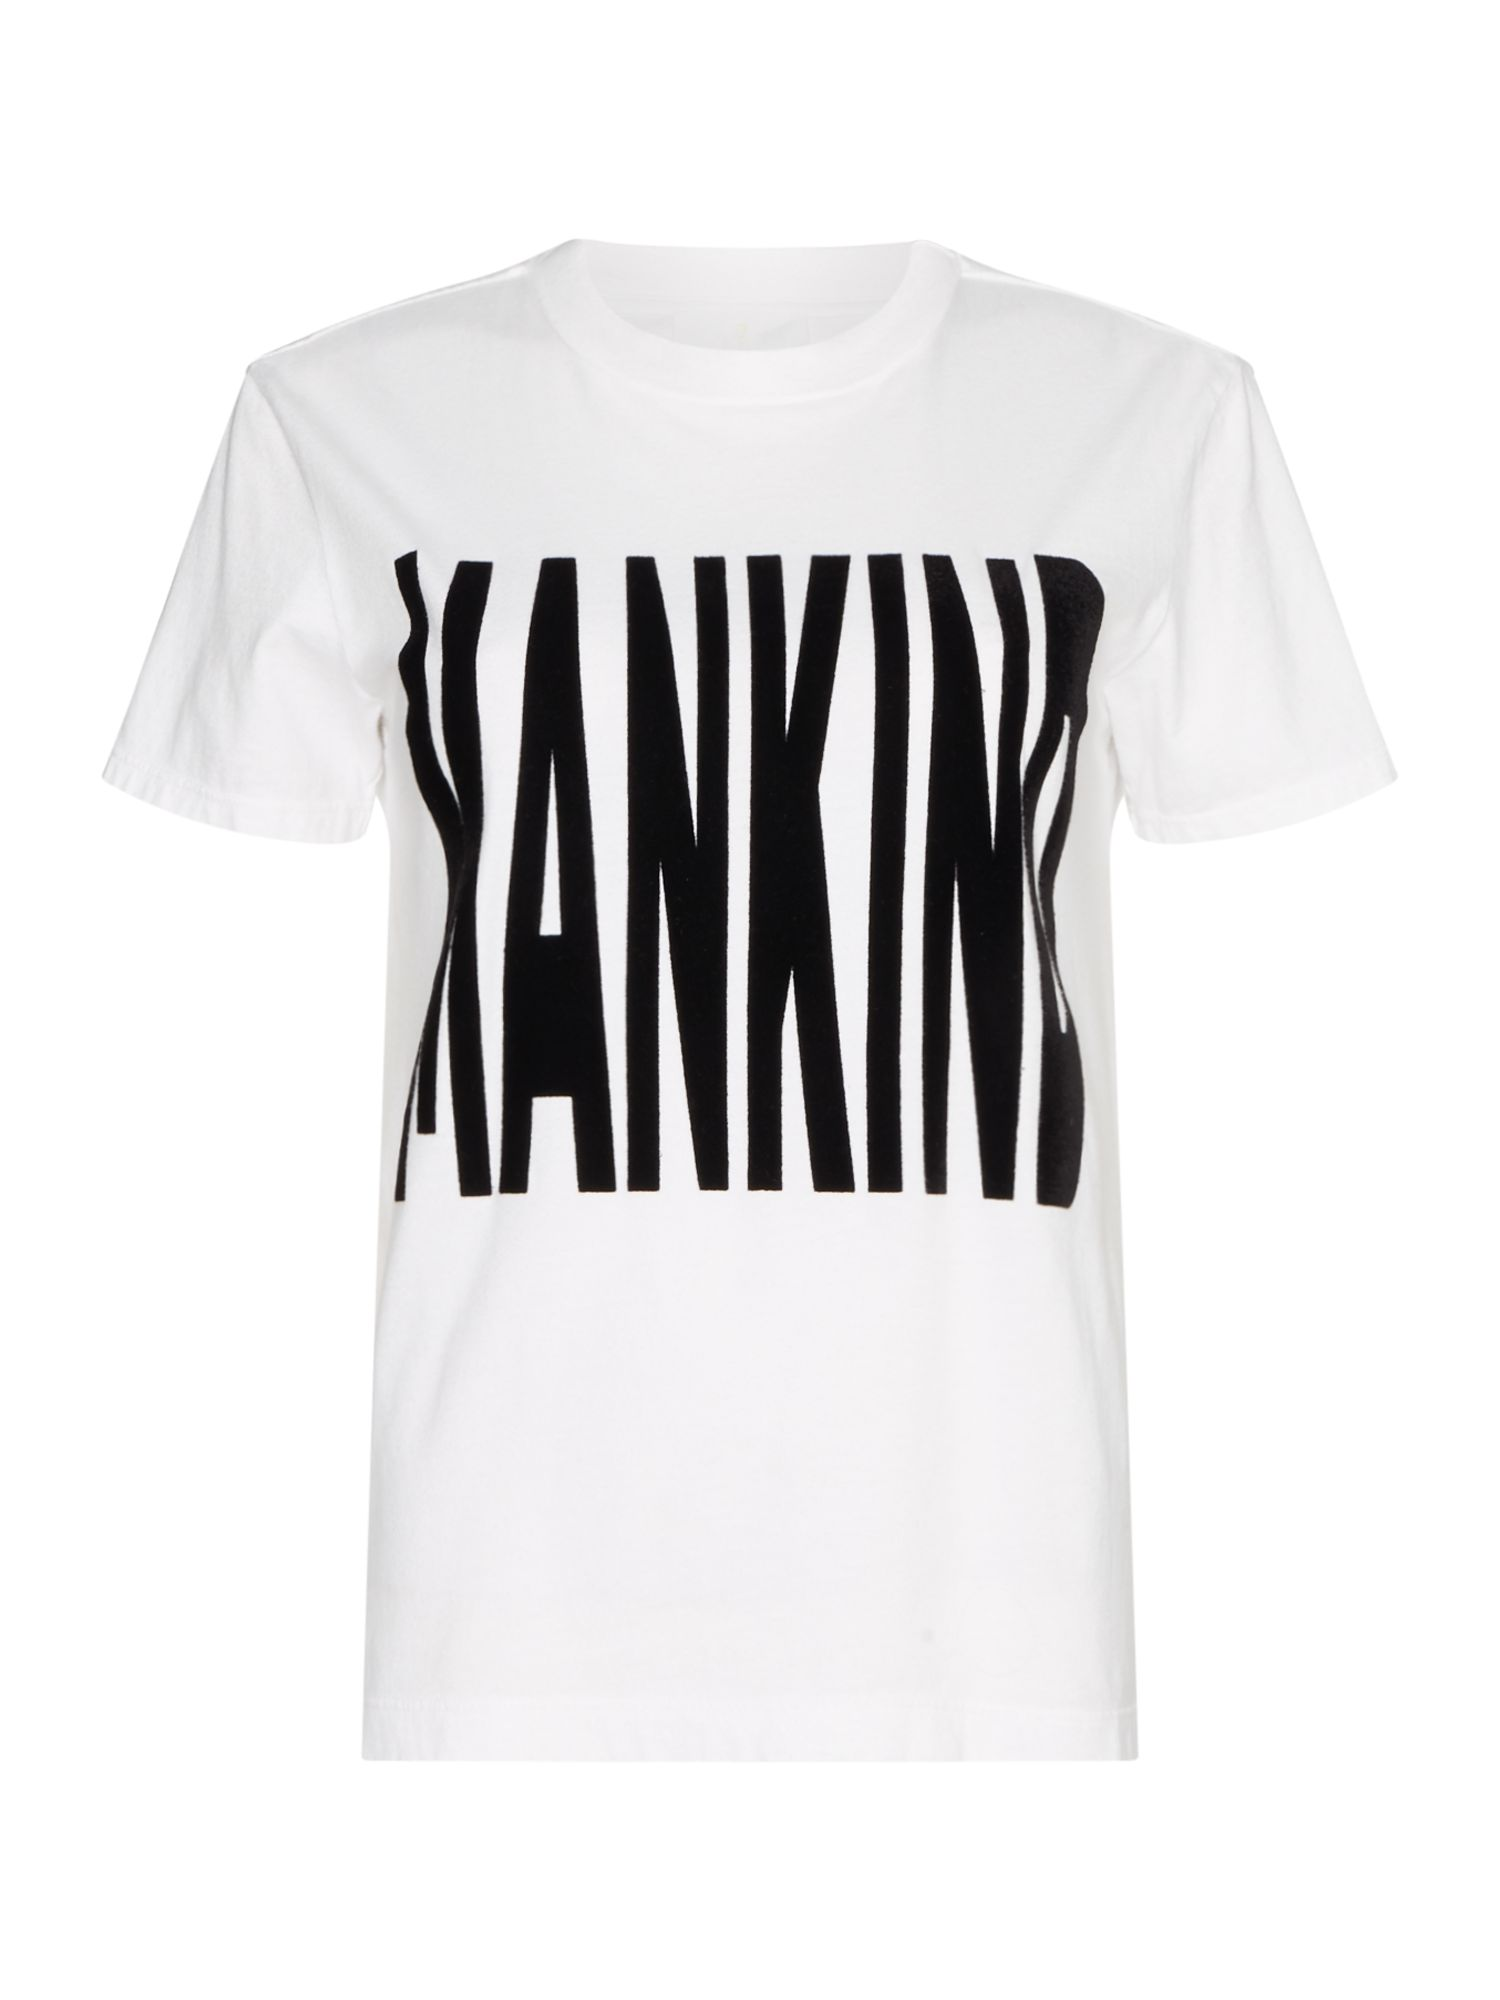 7 For All Mankind Baby Short Sleeve Mankind Logo Tee, White